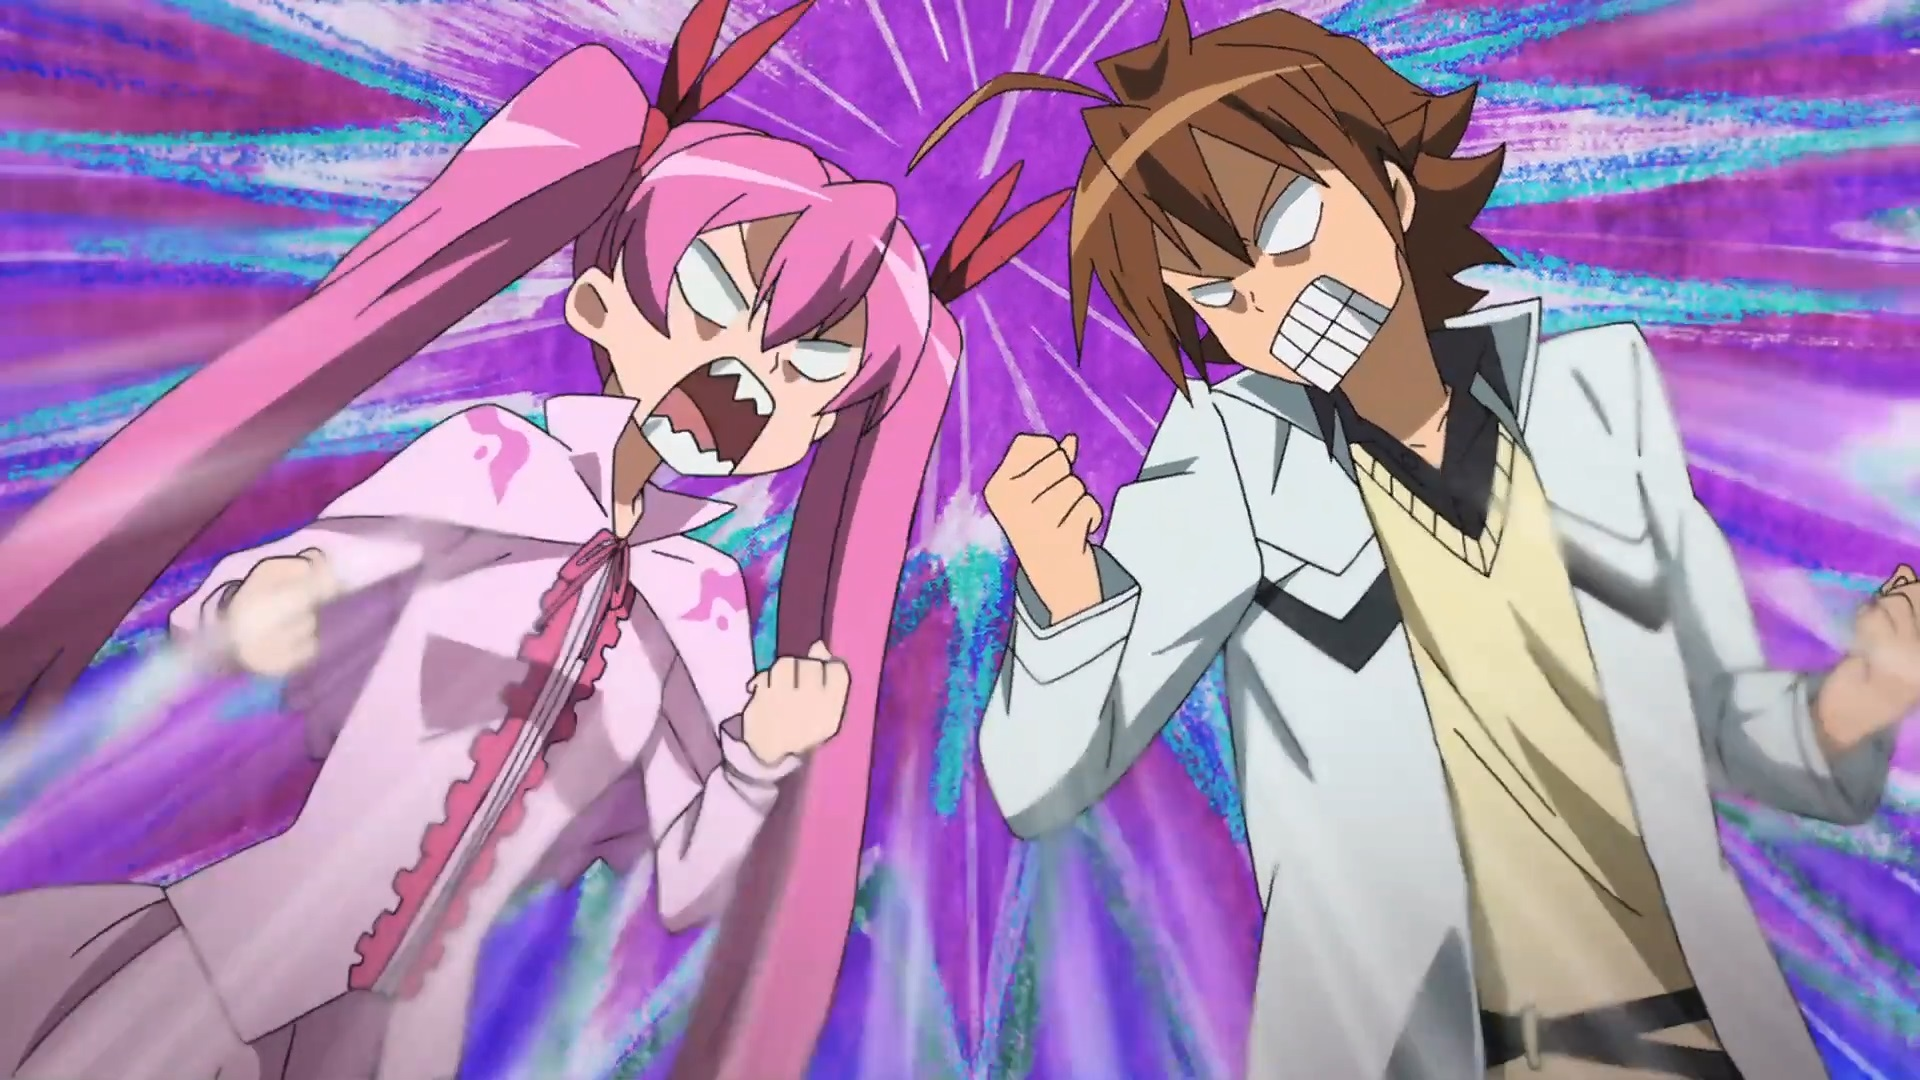 tatsumi and mine dating after divorce